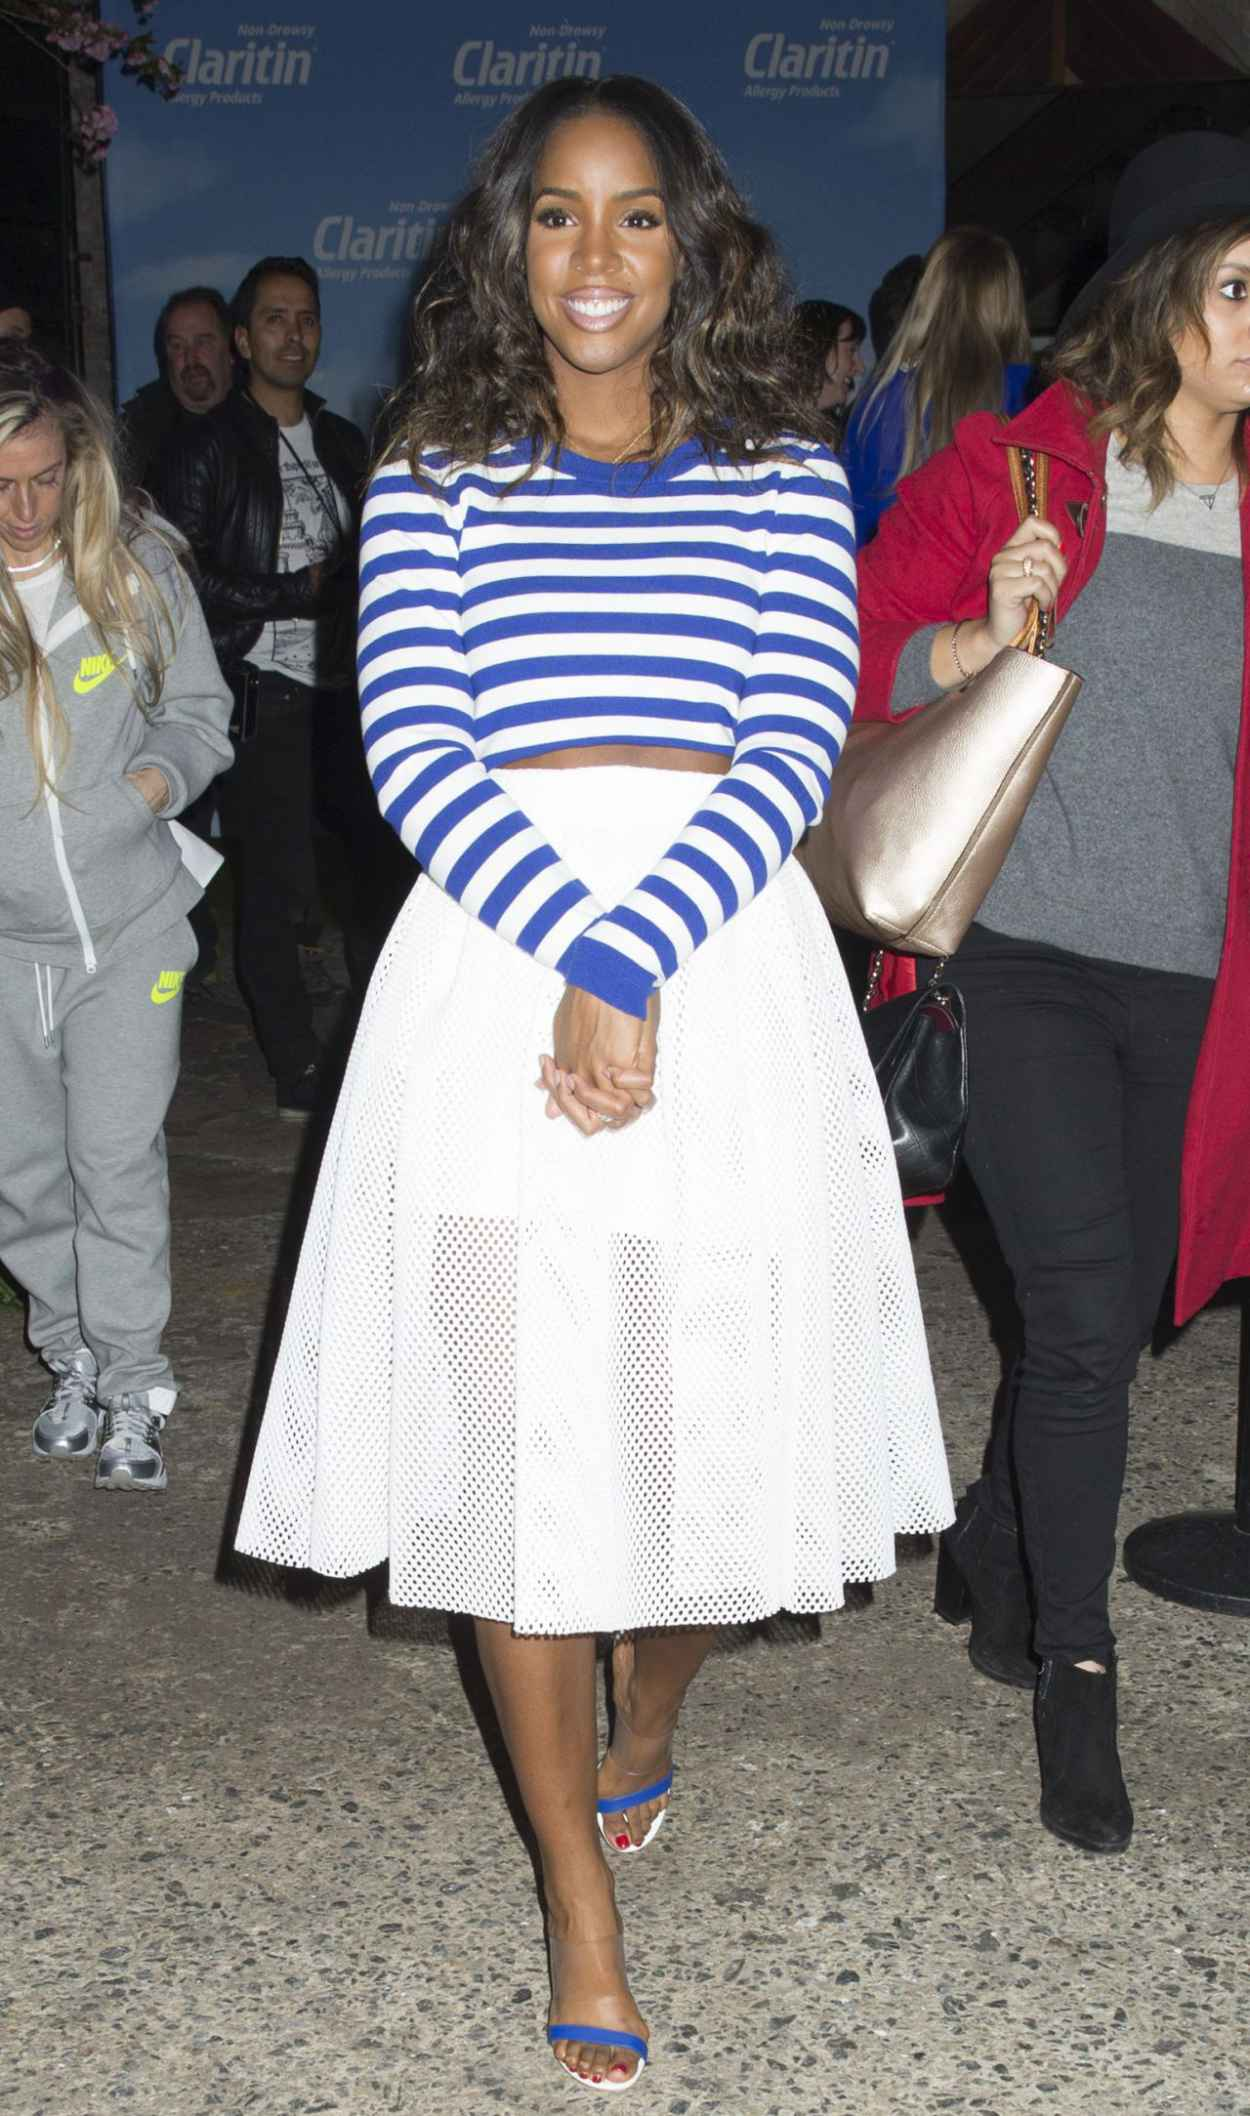 Kelly Rowland - Spring Kickoff With Claritin Event in New York City-5